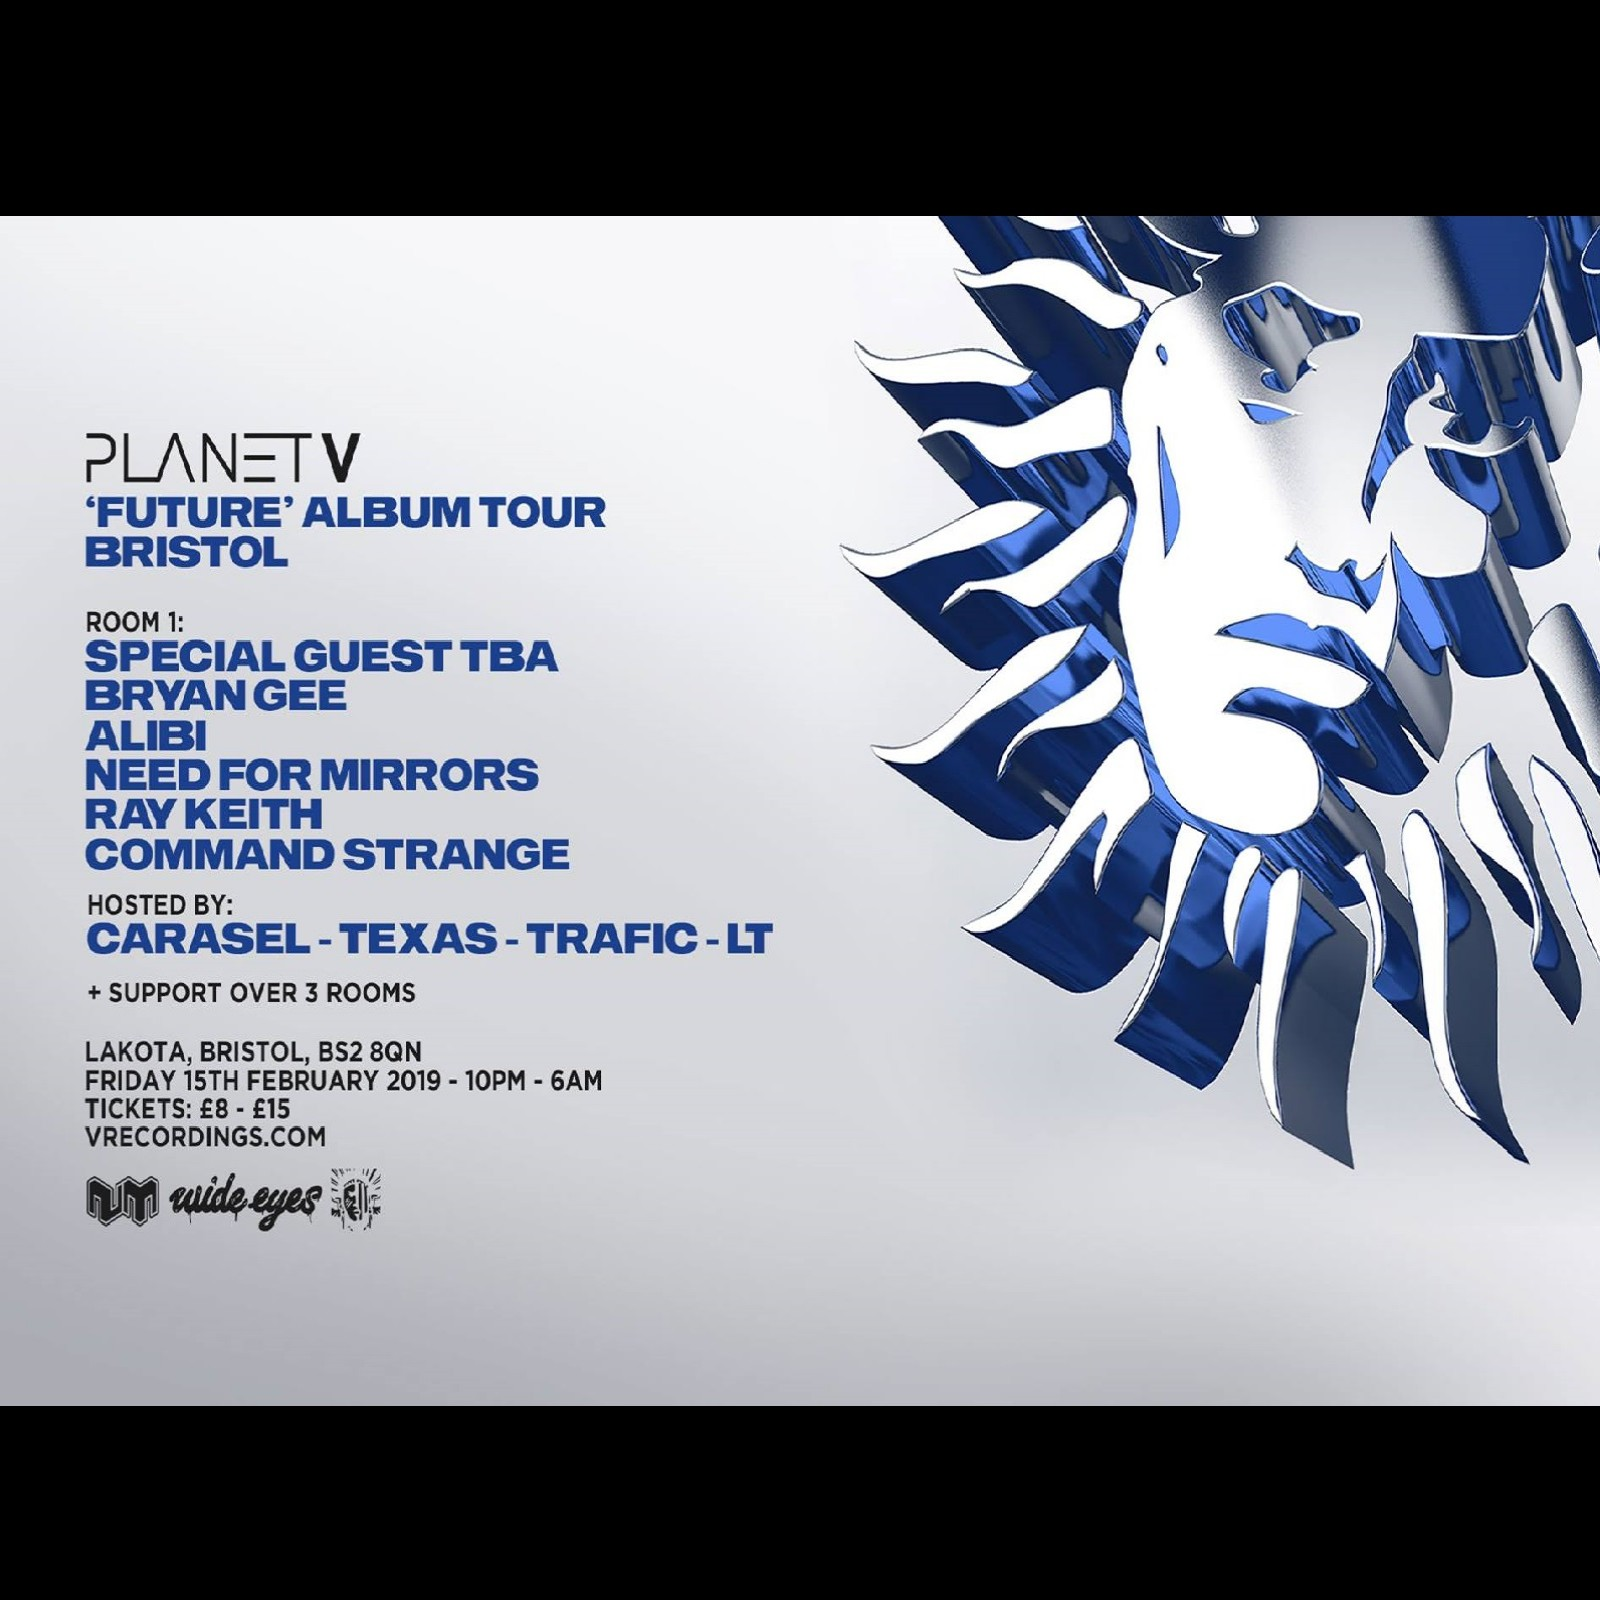 Planet V Future Tour: Bristol